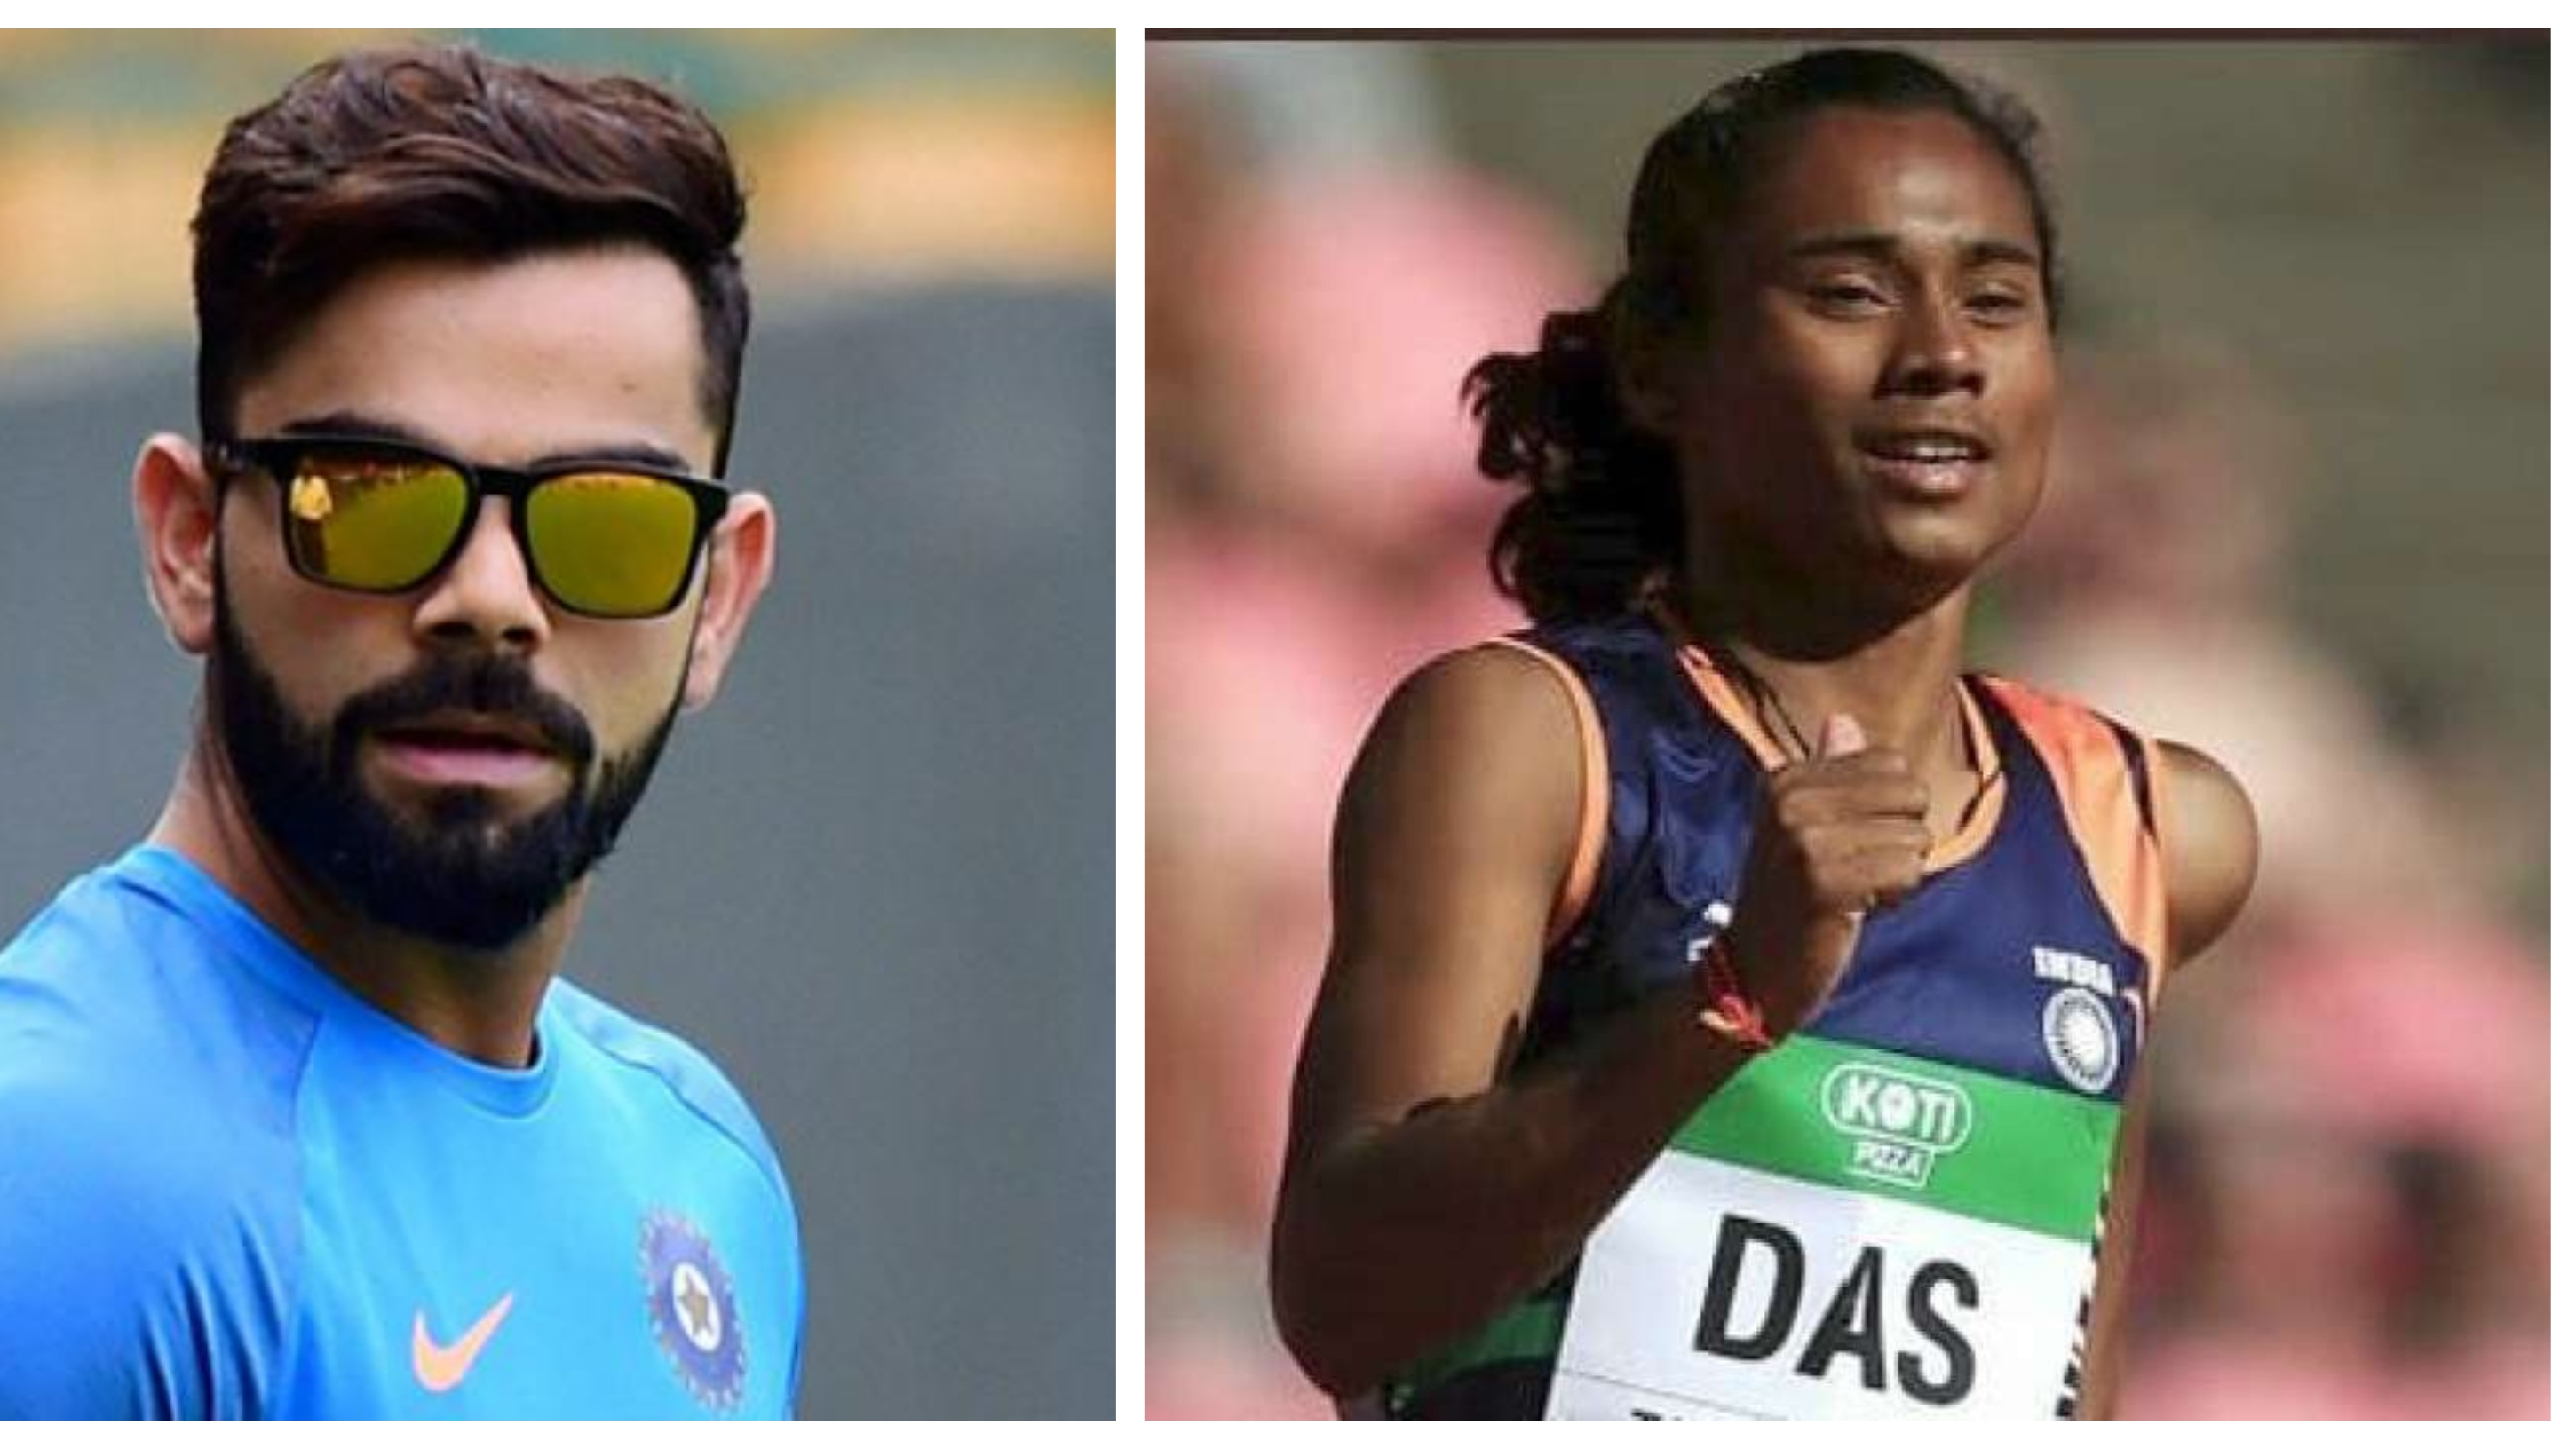 Virat Kohli applauds India's first track and field gold medal winner Hima Das on Twitter